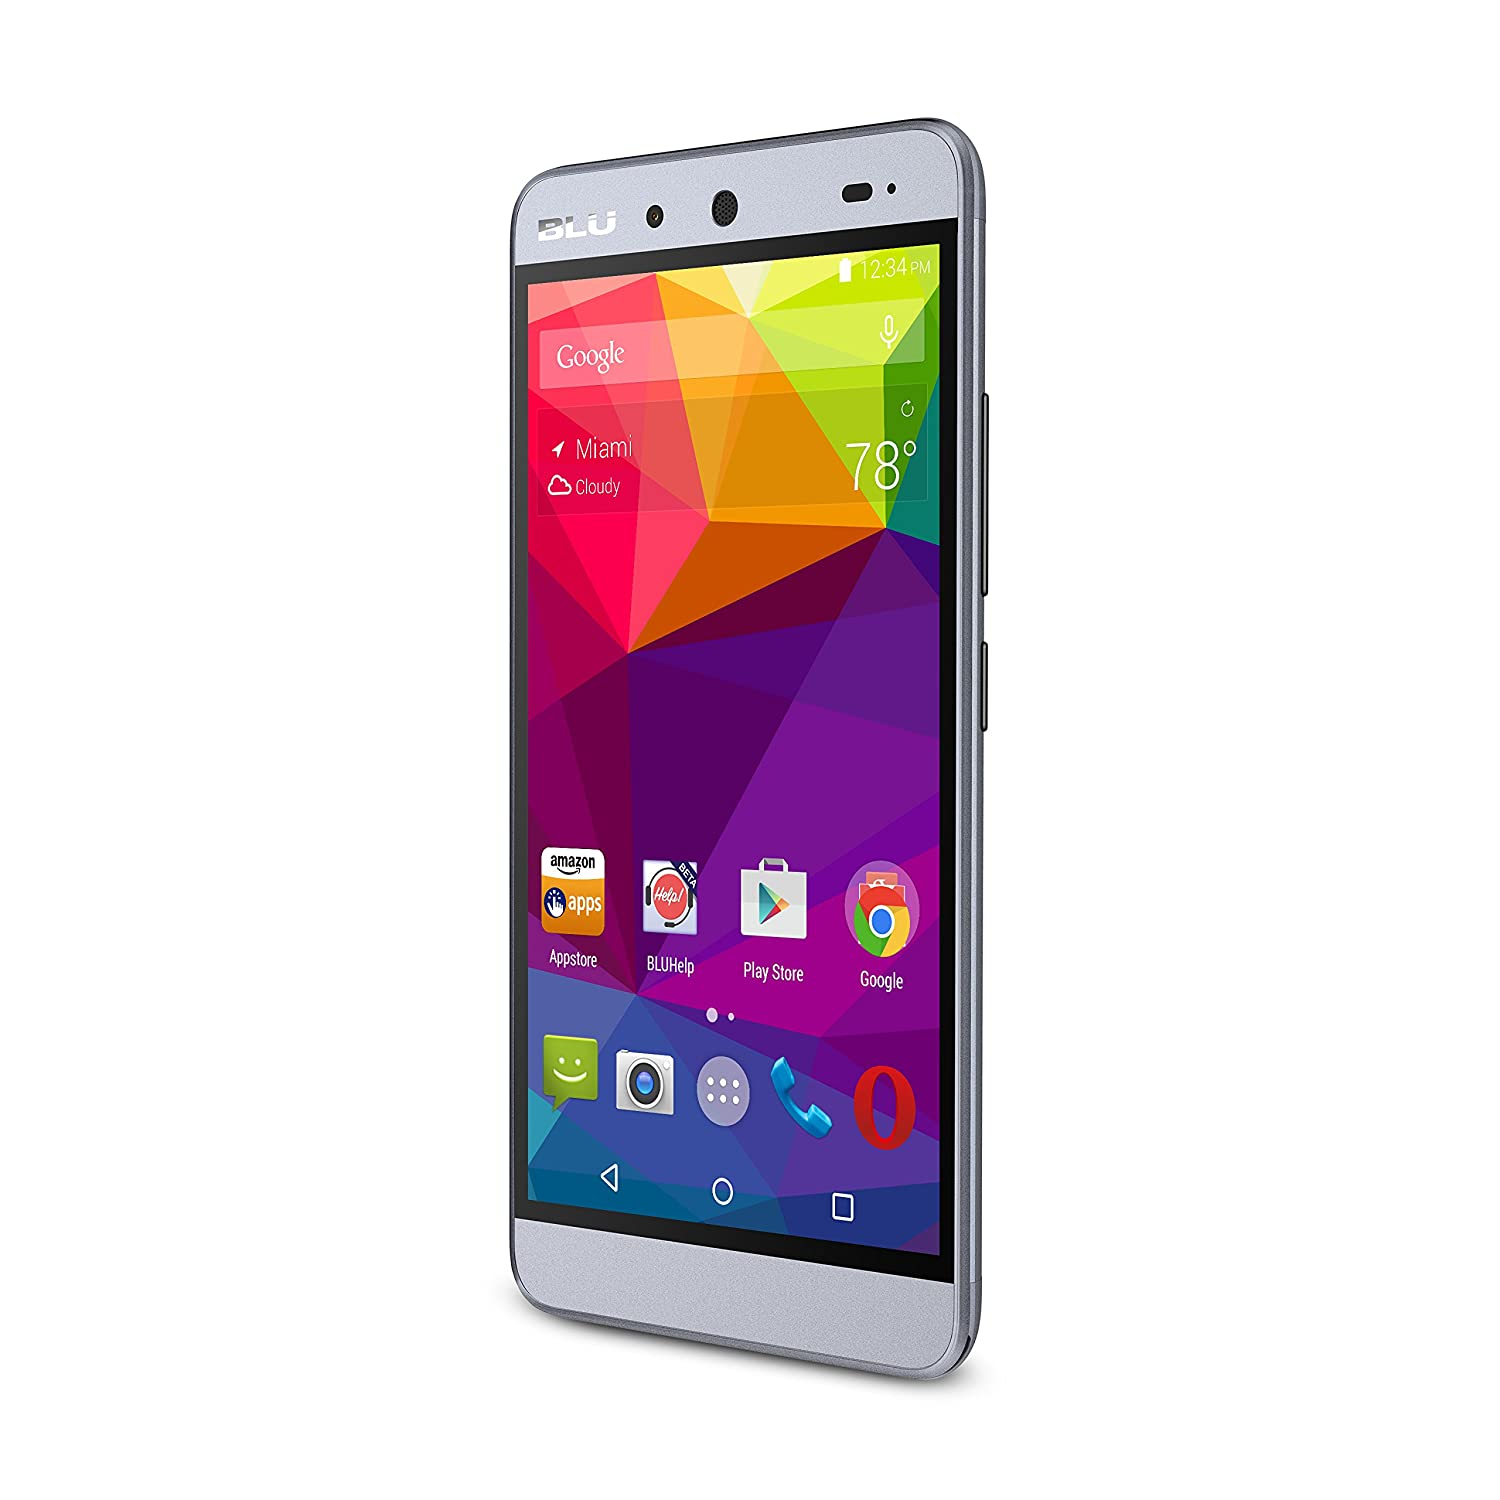 BLU ENERGY X Smartphone - With 4000 mAh Super Battery - GSM Unlocked - Grey